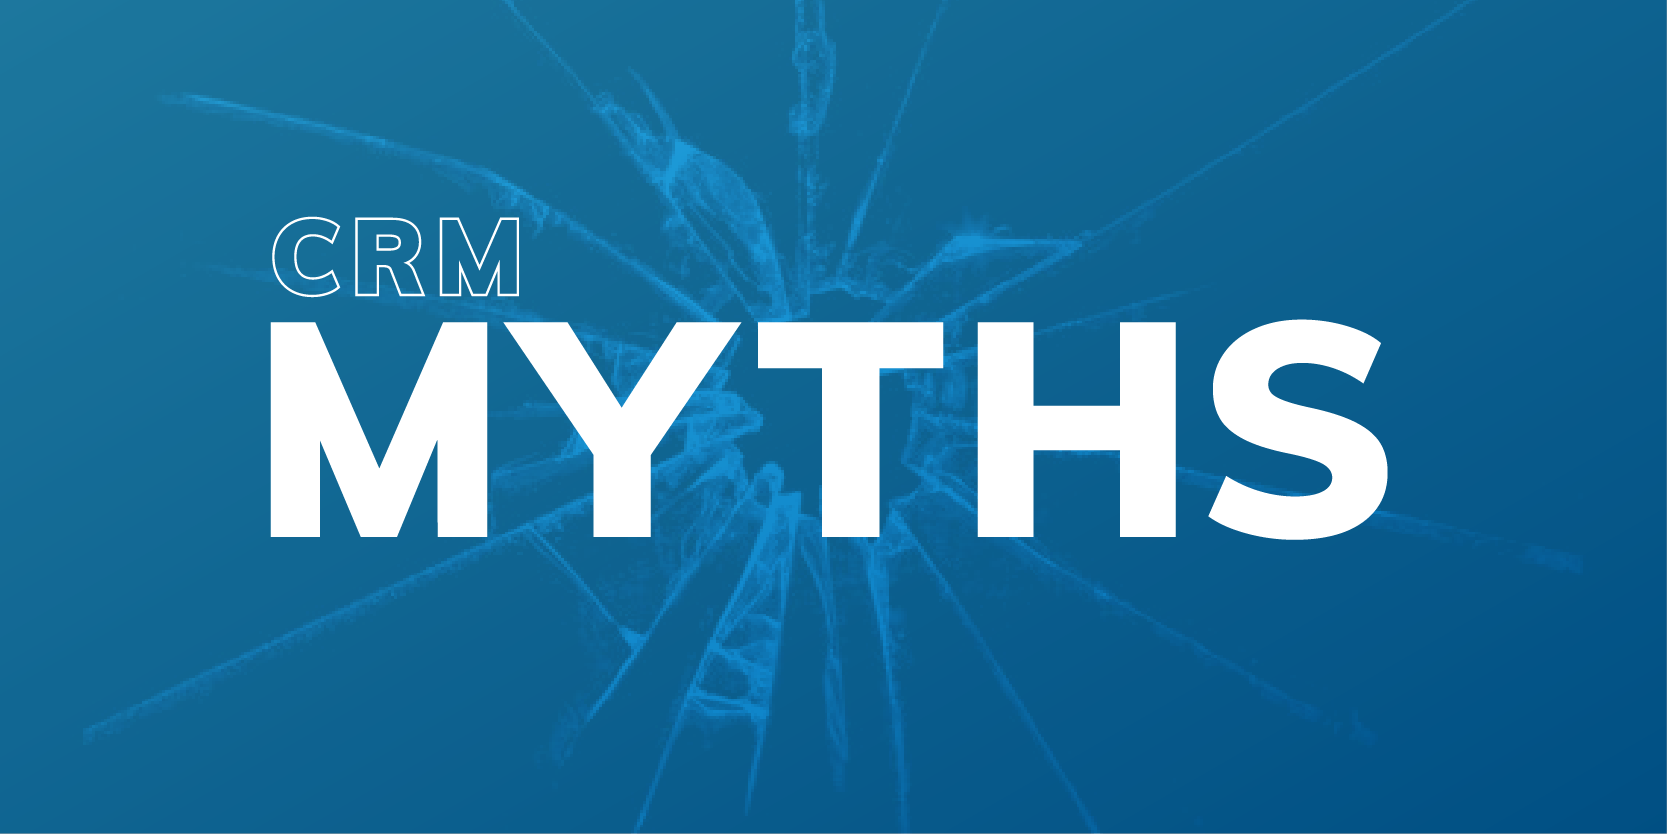 Myths-headerimage-01